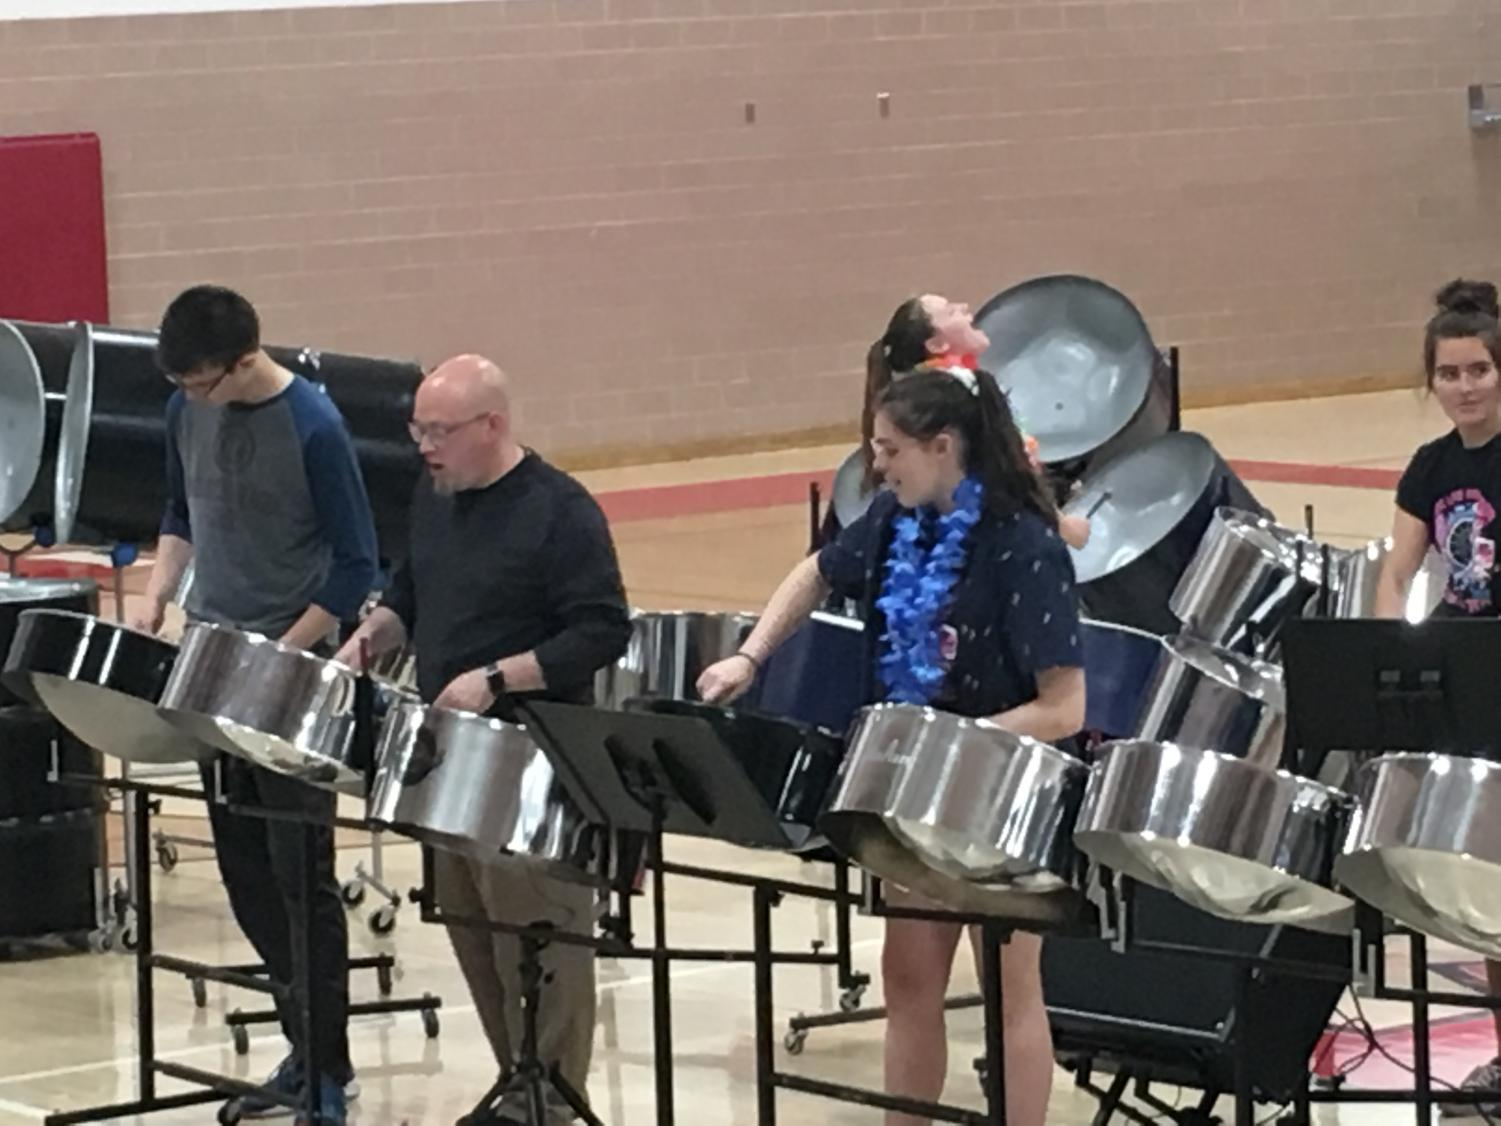 The St. Louis High School steel drum band performs for the school.